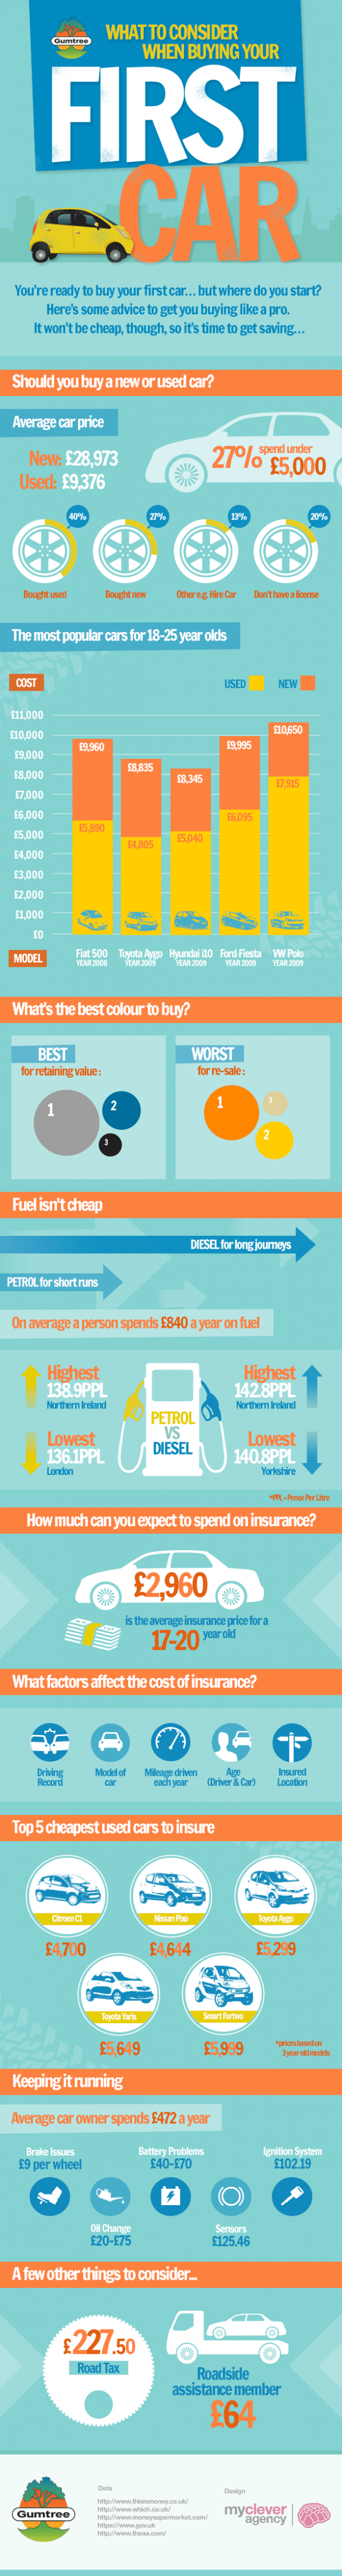 What to consider when buying your first car!